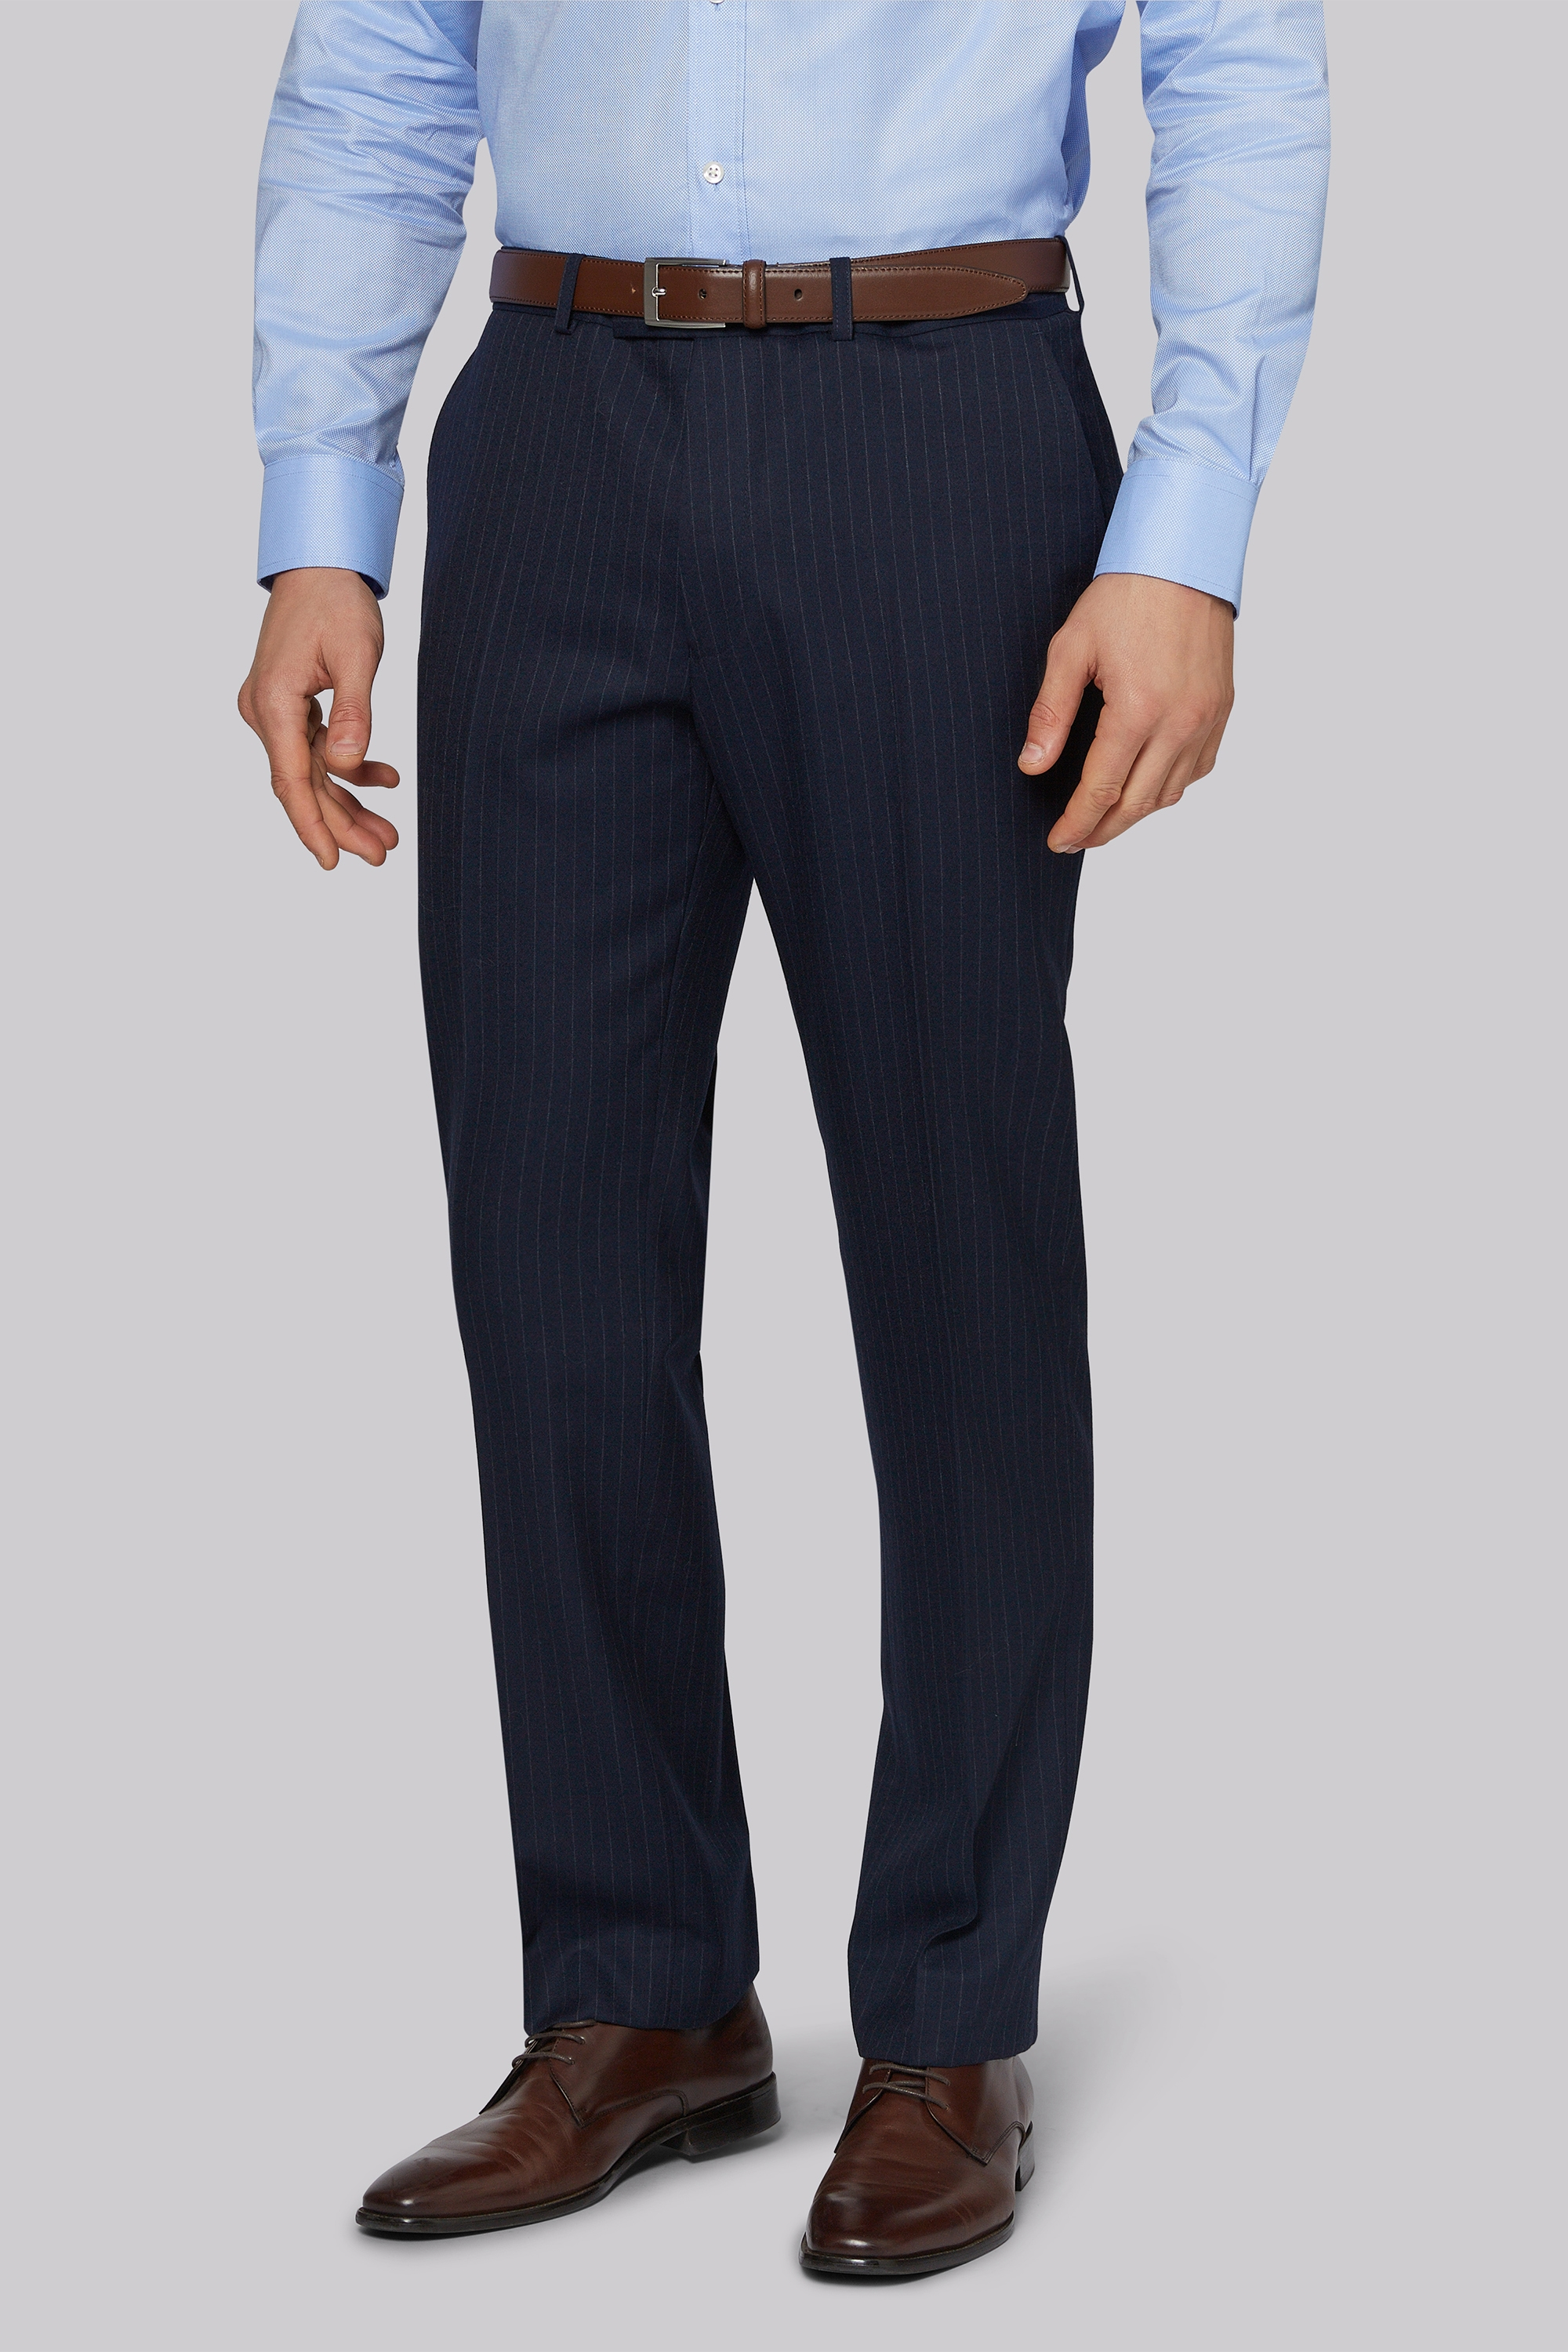 Moss Bros Regular Fit Navy Chalk Stripe Trousers